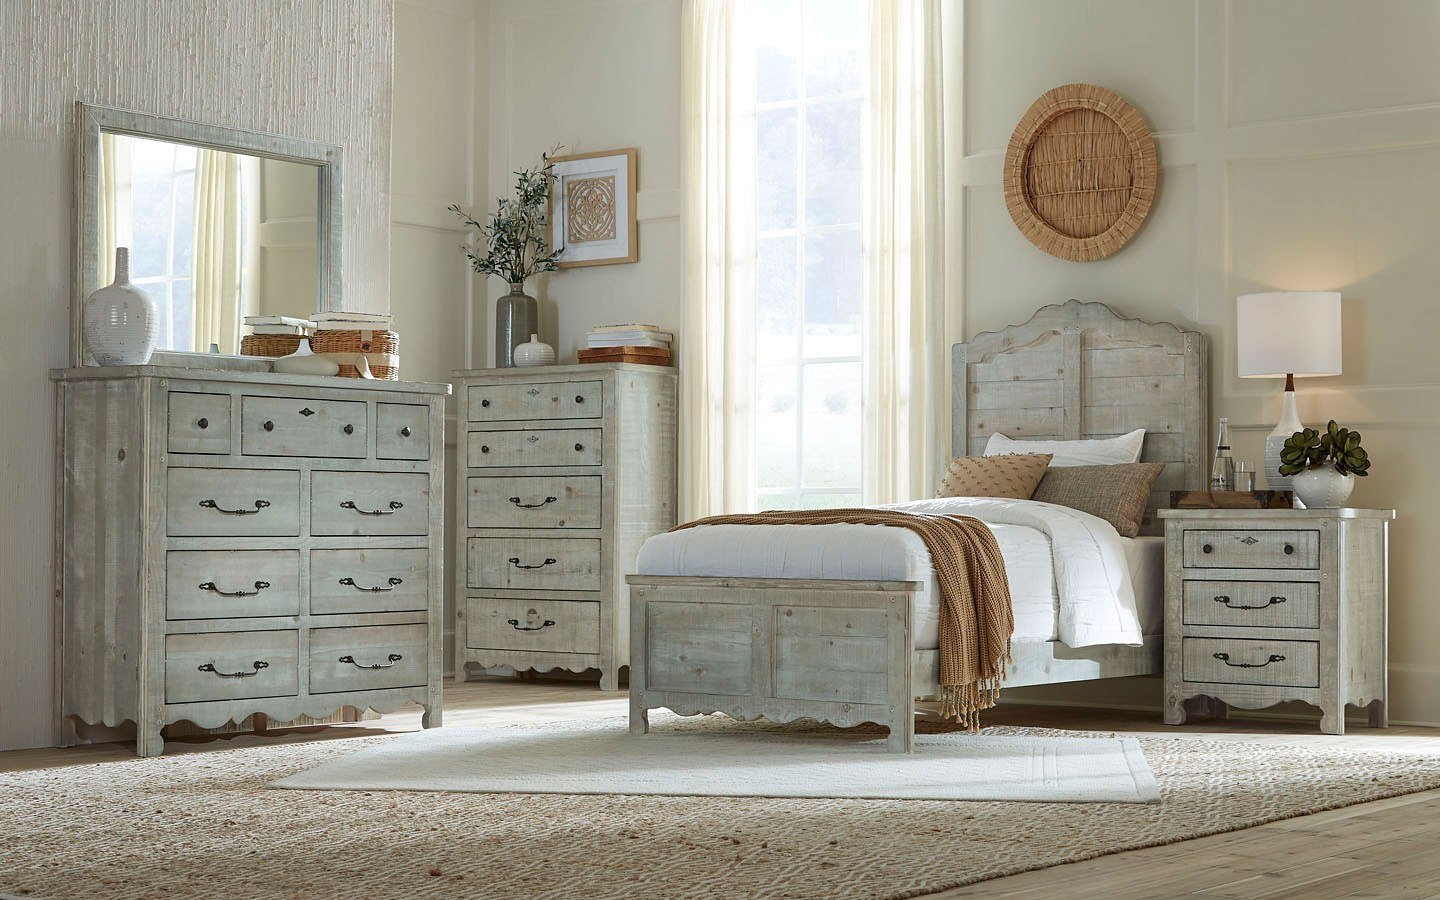 Chatsworth bedroom collection available in twin, full, queen & king